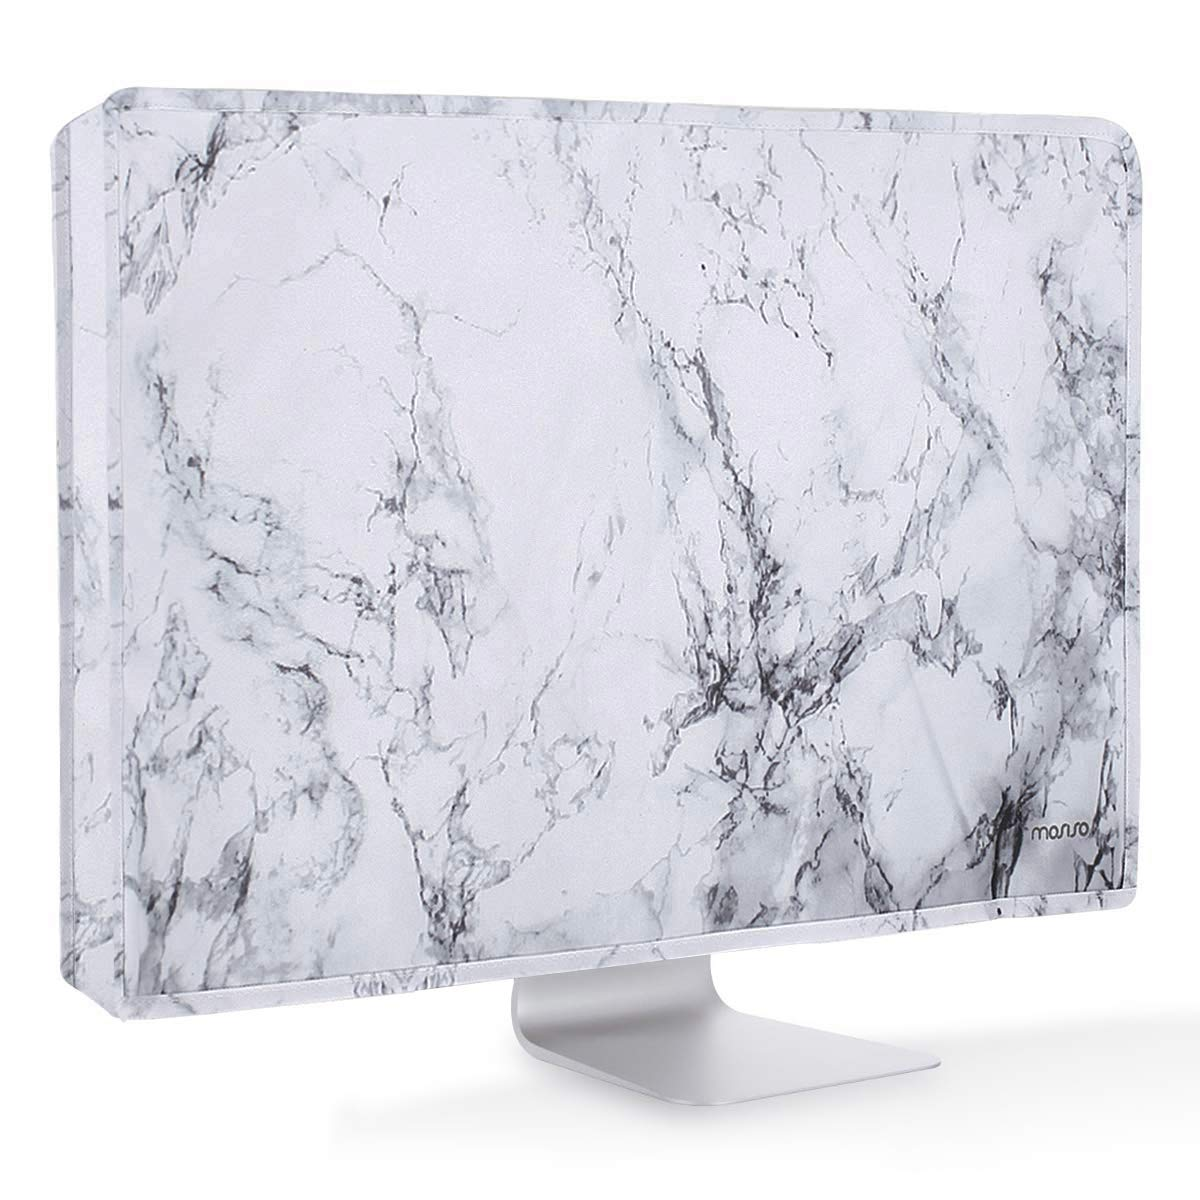 MOSISO Monitor Dust Cover 26, 27, 28, 29 Inch Anti-Static Polyester LCD/LED/HD Panel Case Screen Display Protective Sleeve Compatible with 26-29 Inch iMac, PC, Desktop Computer and TV, White Marble